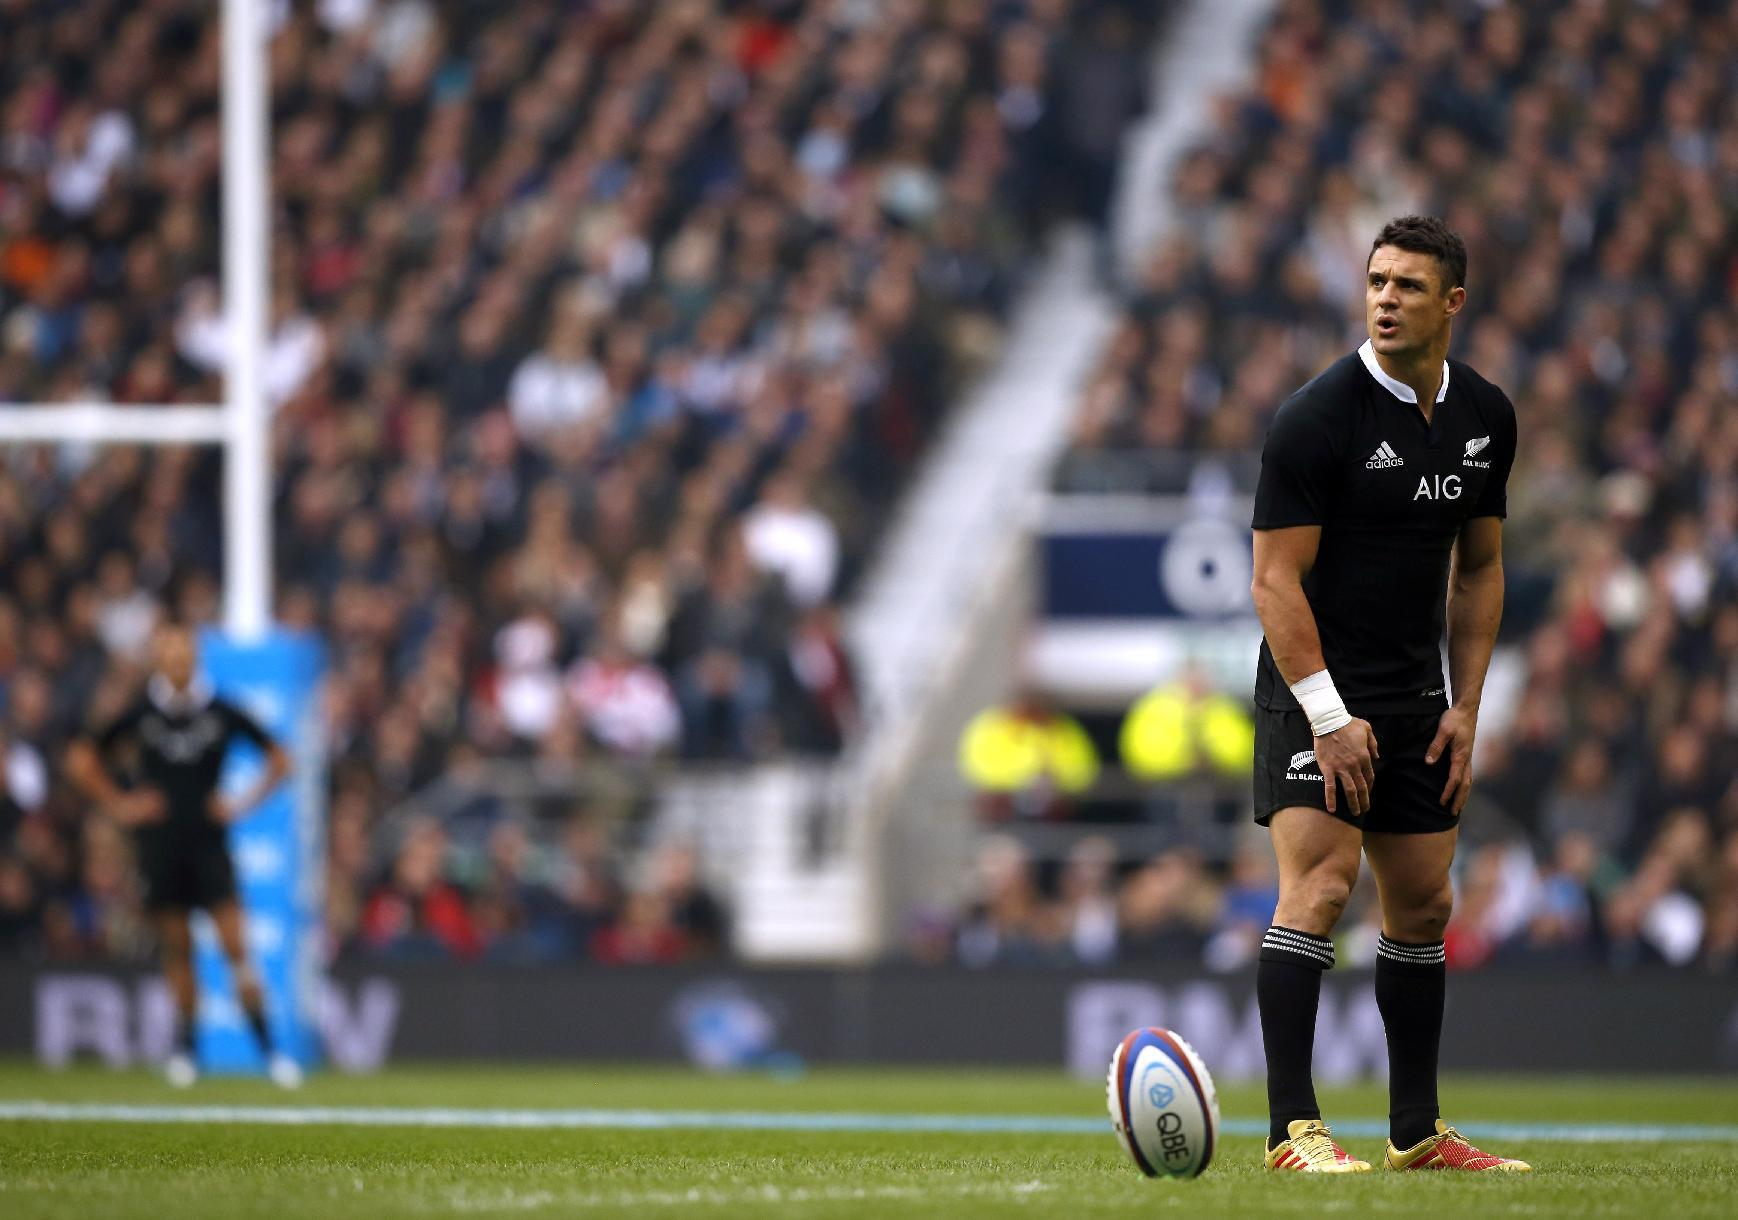 All Black Carter to play in France after WCup